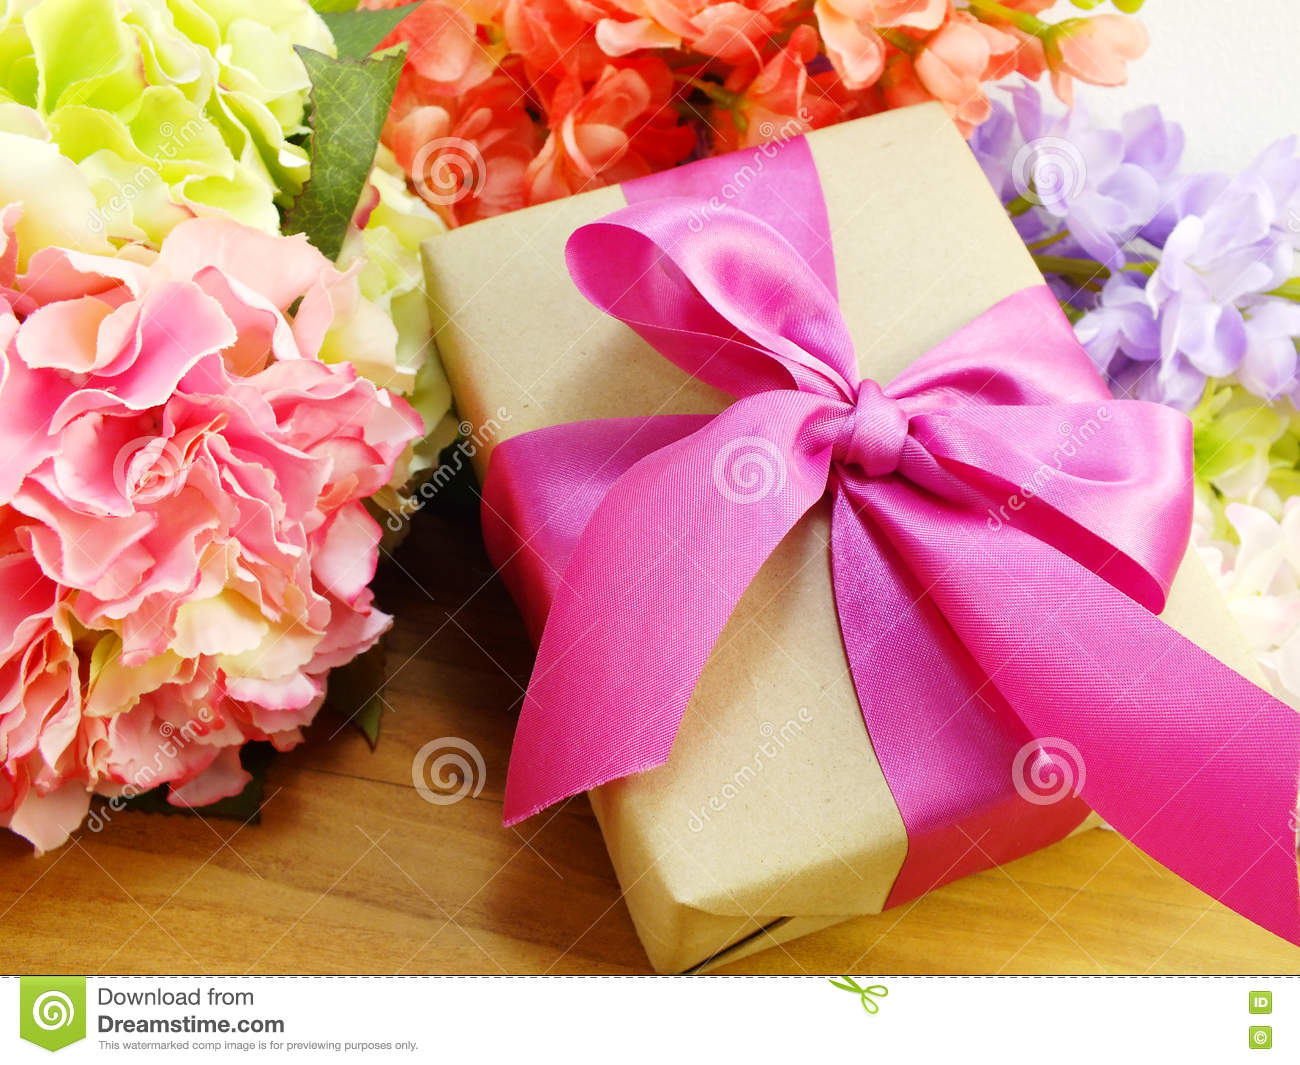 Gifts and beautiful bouquet of flowers for mothers day background background beautiful birthday bouquet day flowers gifts mom dhlflorist Choice Image